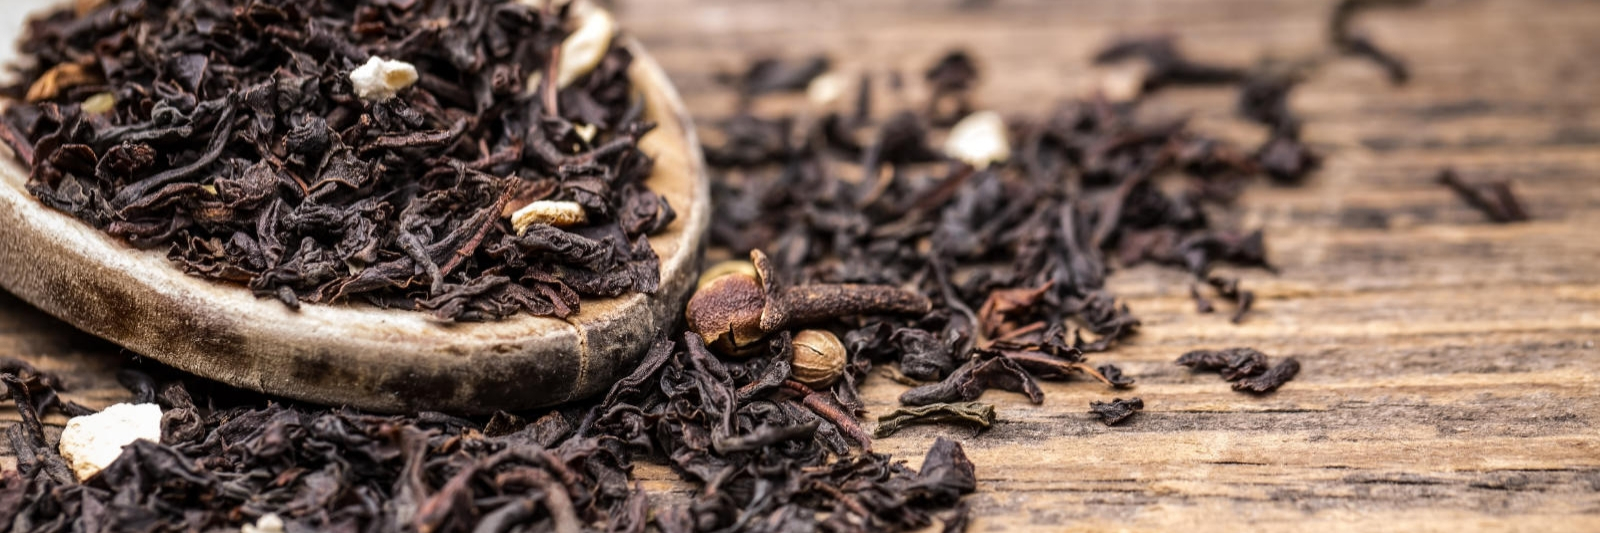 What Is A Quality Black Tea Garden